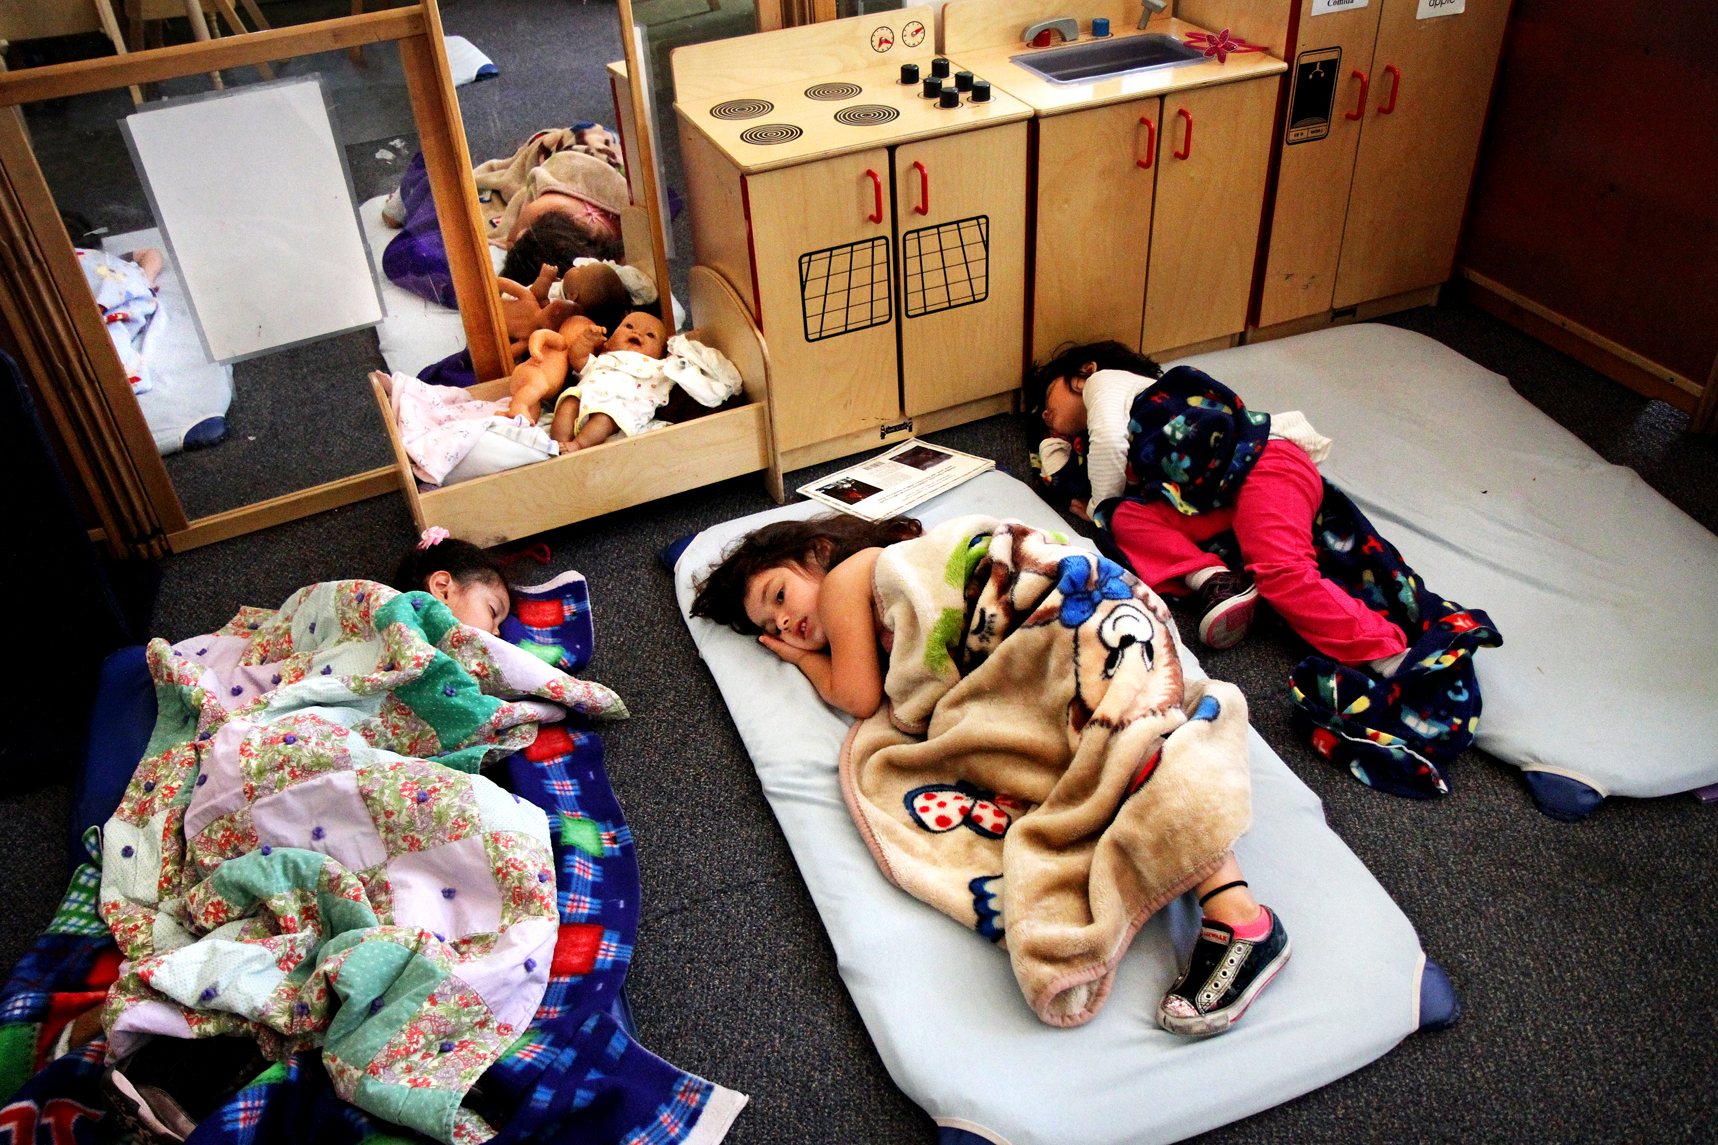 Itzel, center, rests during naptime at the Haven Family House, Thursday, May 12, 2011. The Haven Family House serves as a transitional home for at-risk families, they face major budget cuts.